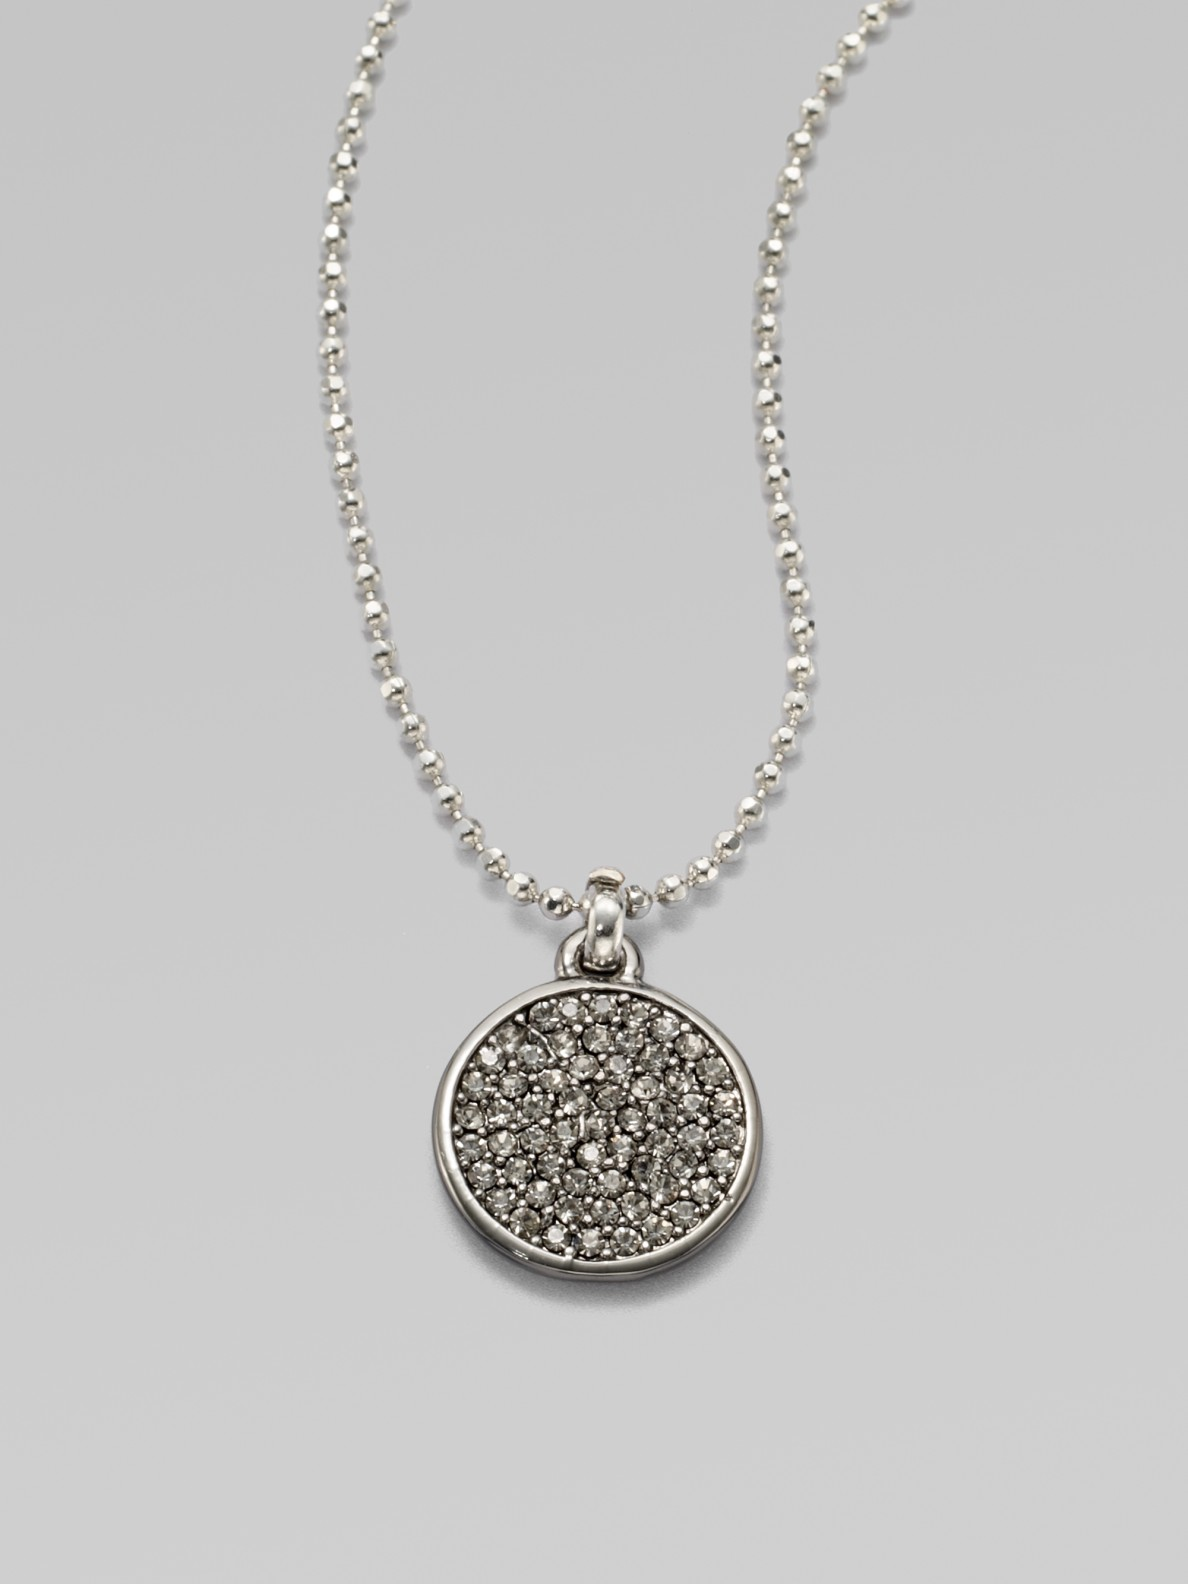 Lyst michael kors pav disc pendant necklace in metallic gallery mozeypictures Image collections